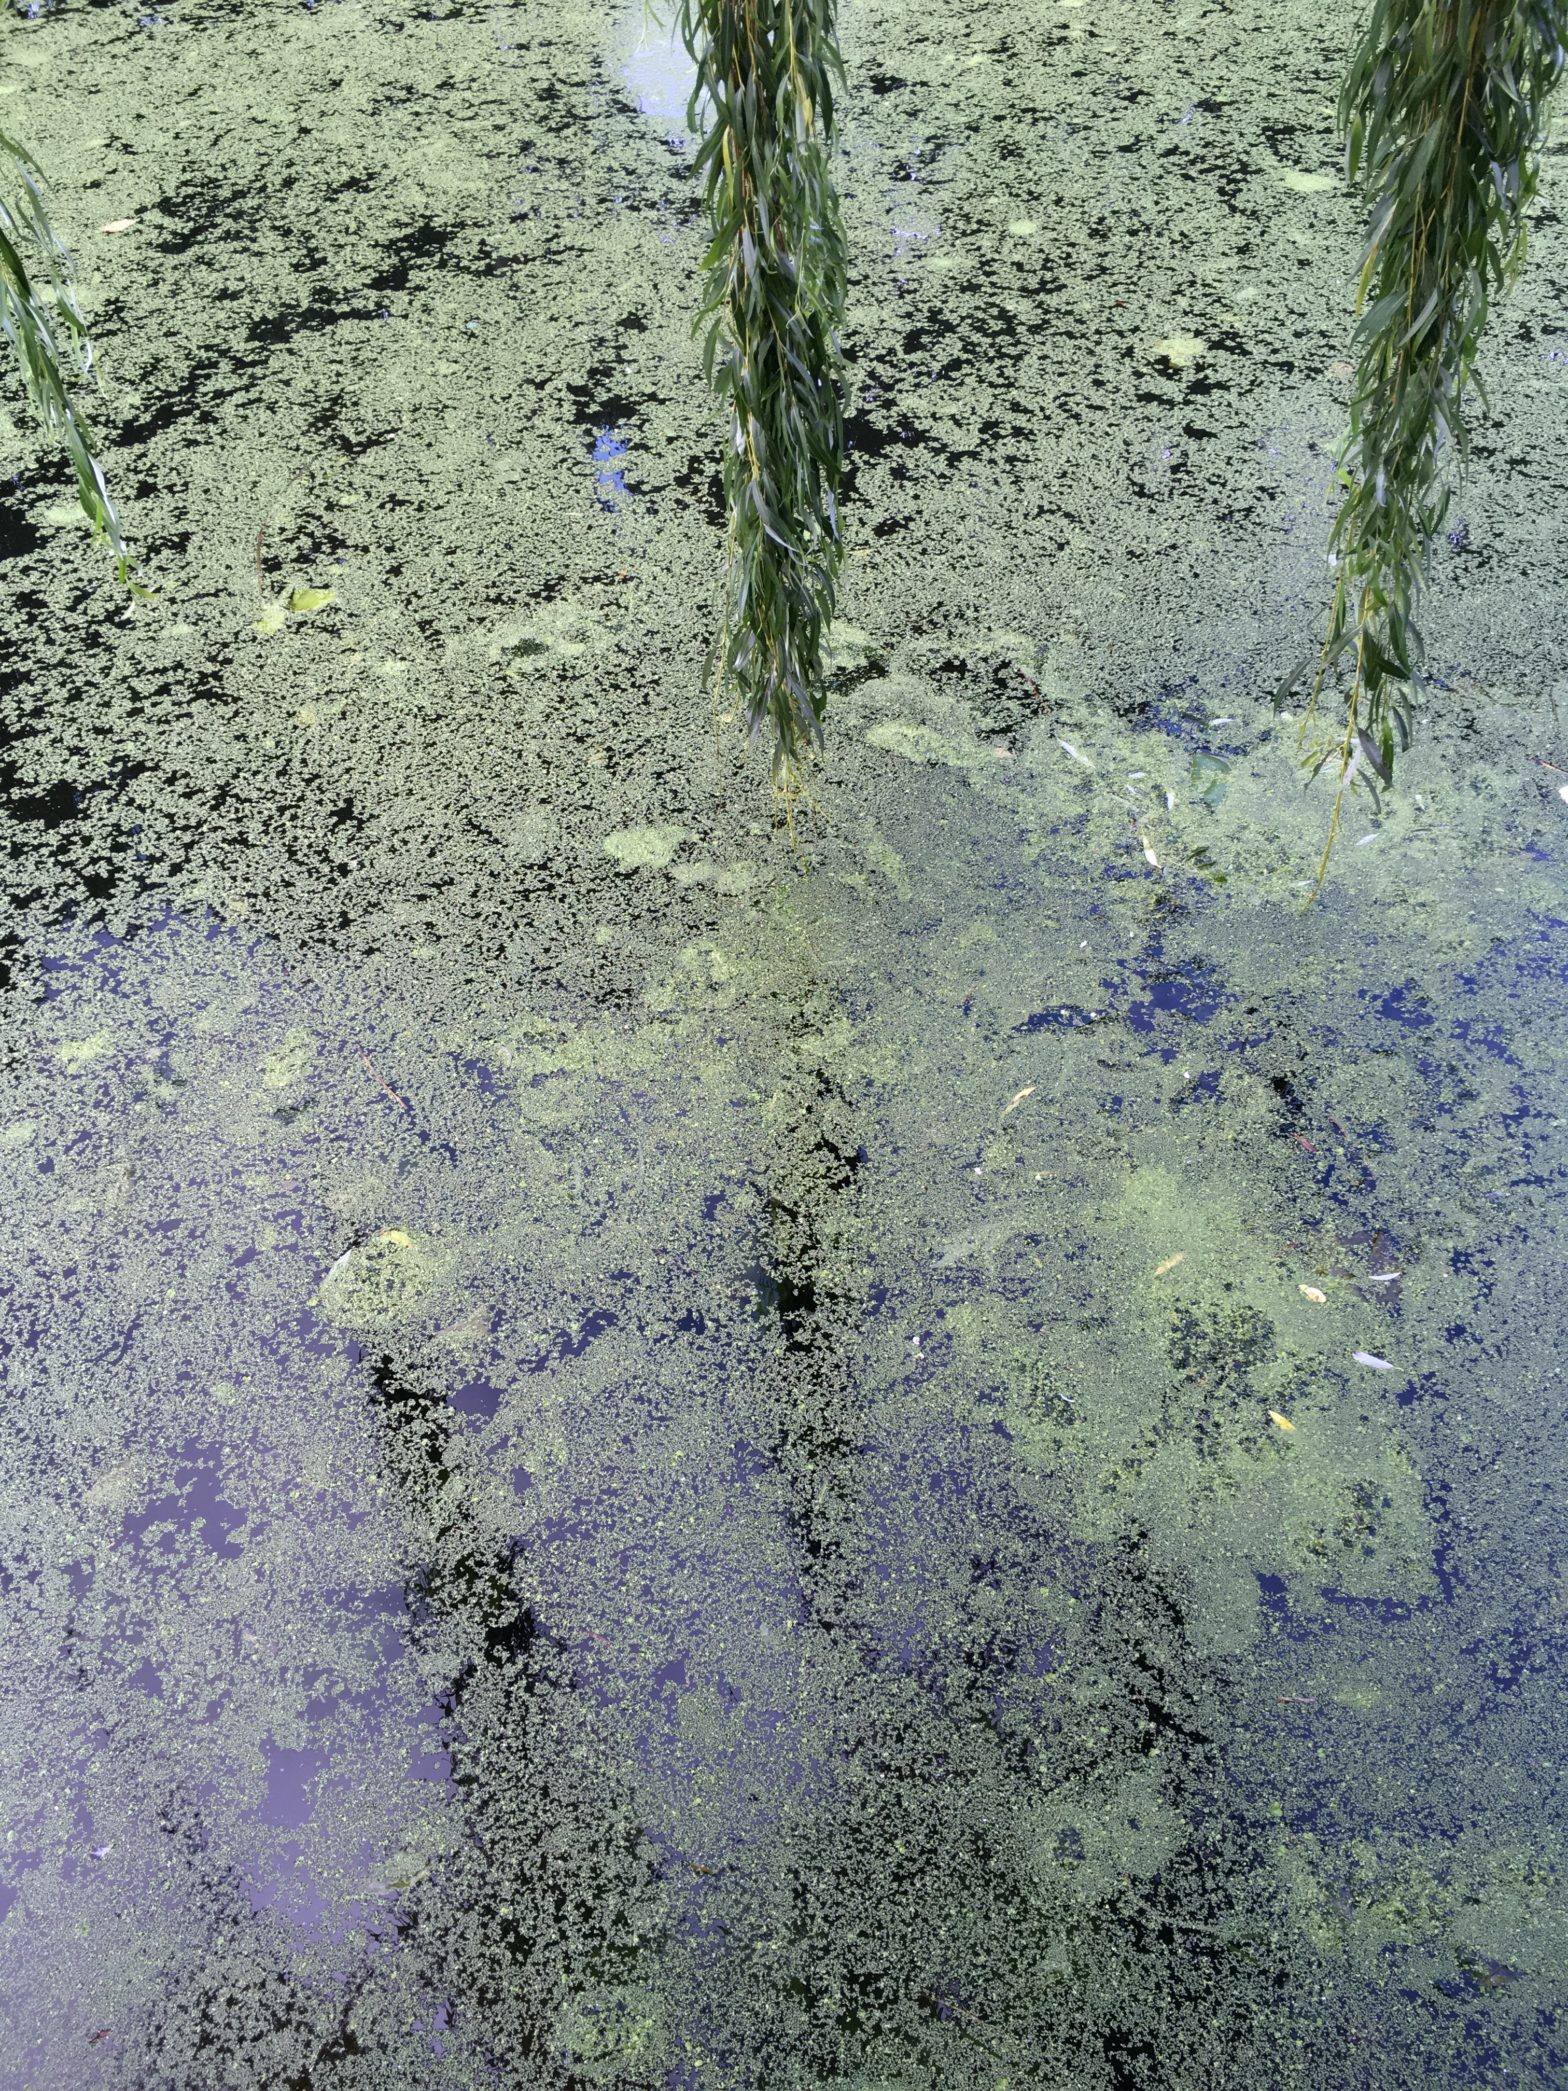 The water in the canals of East London